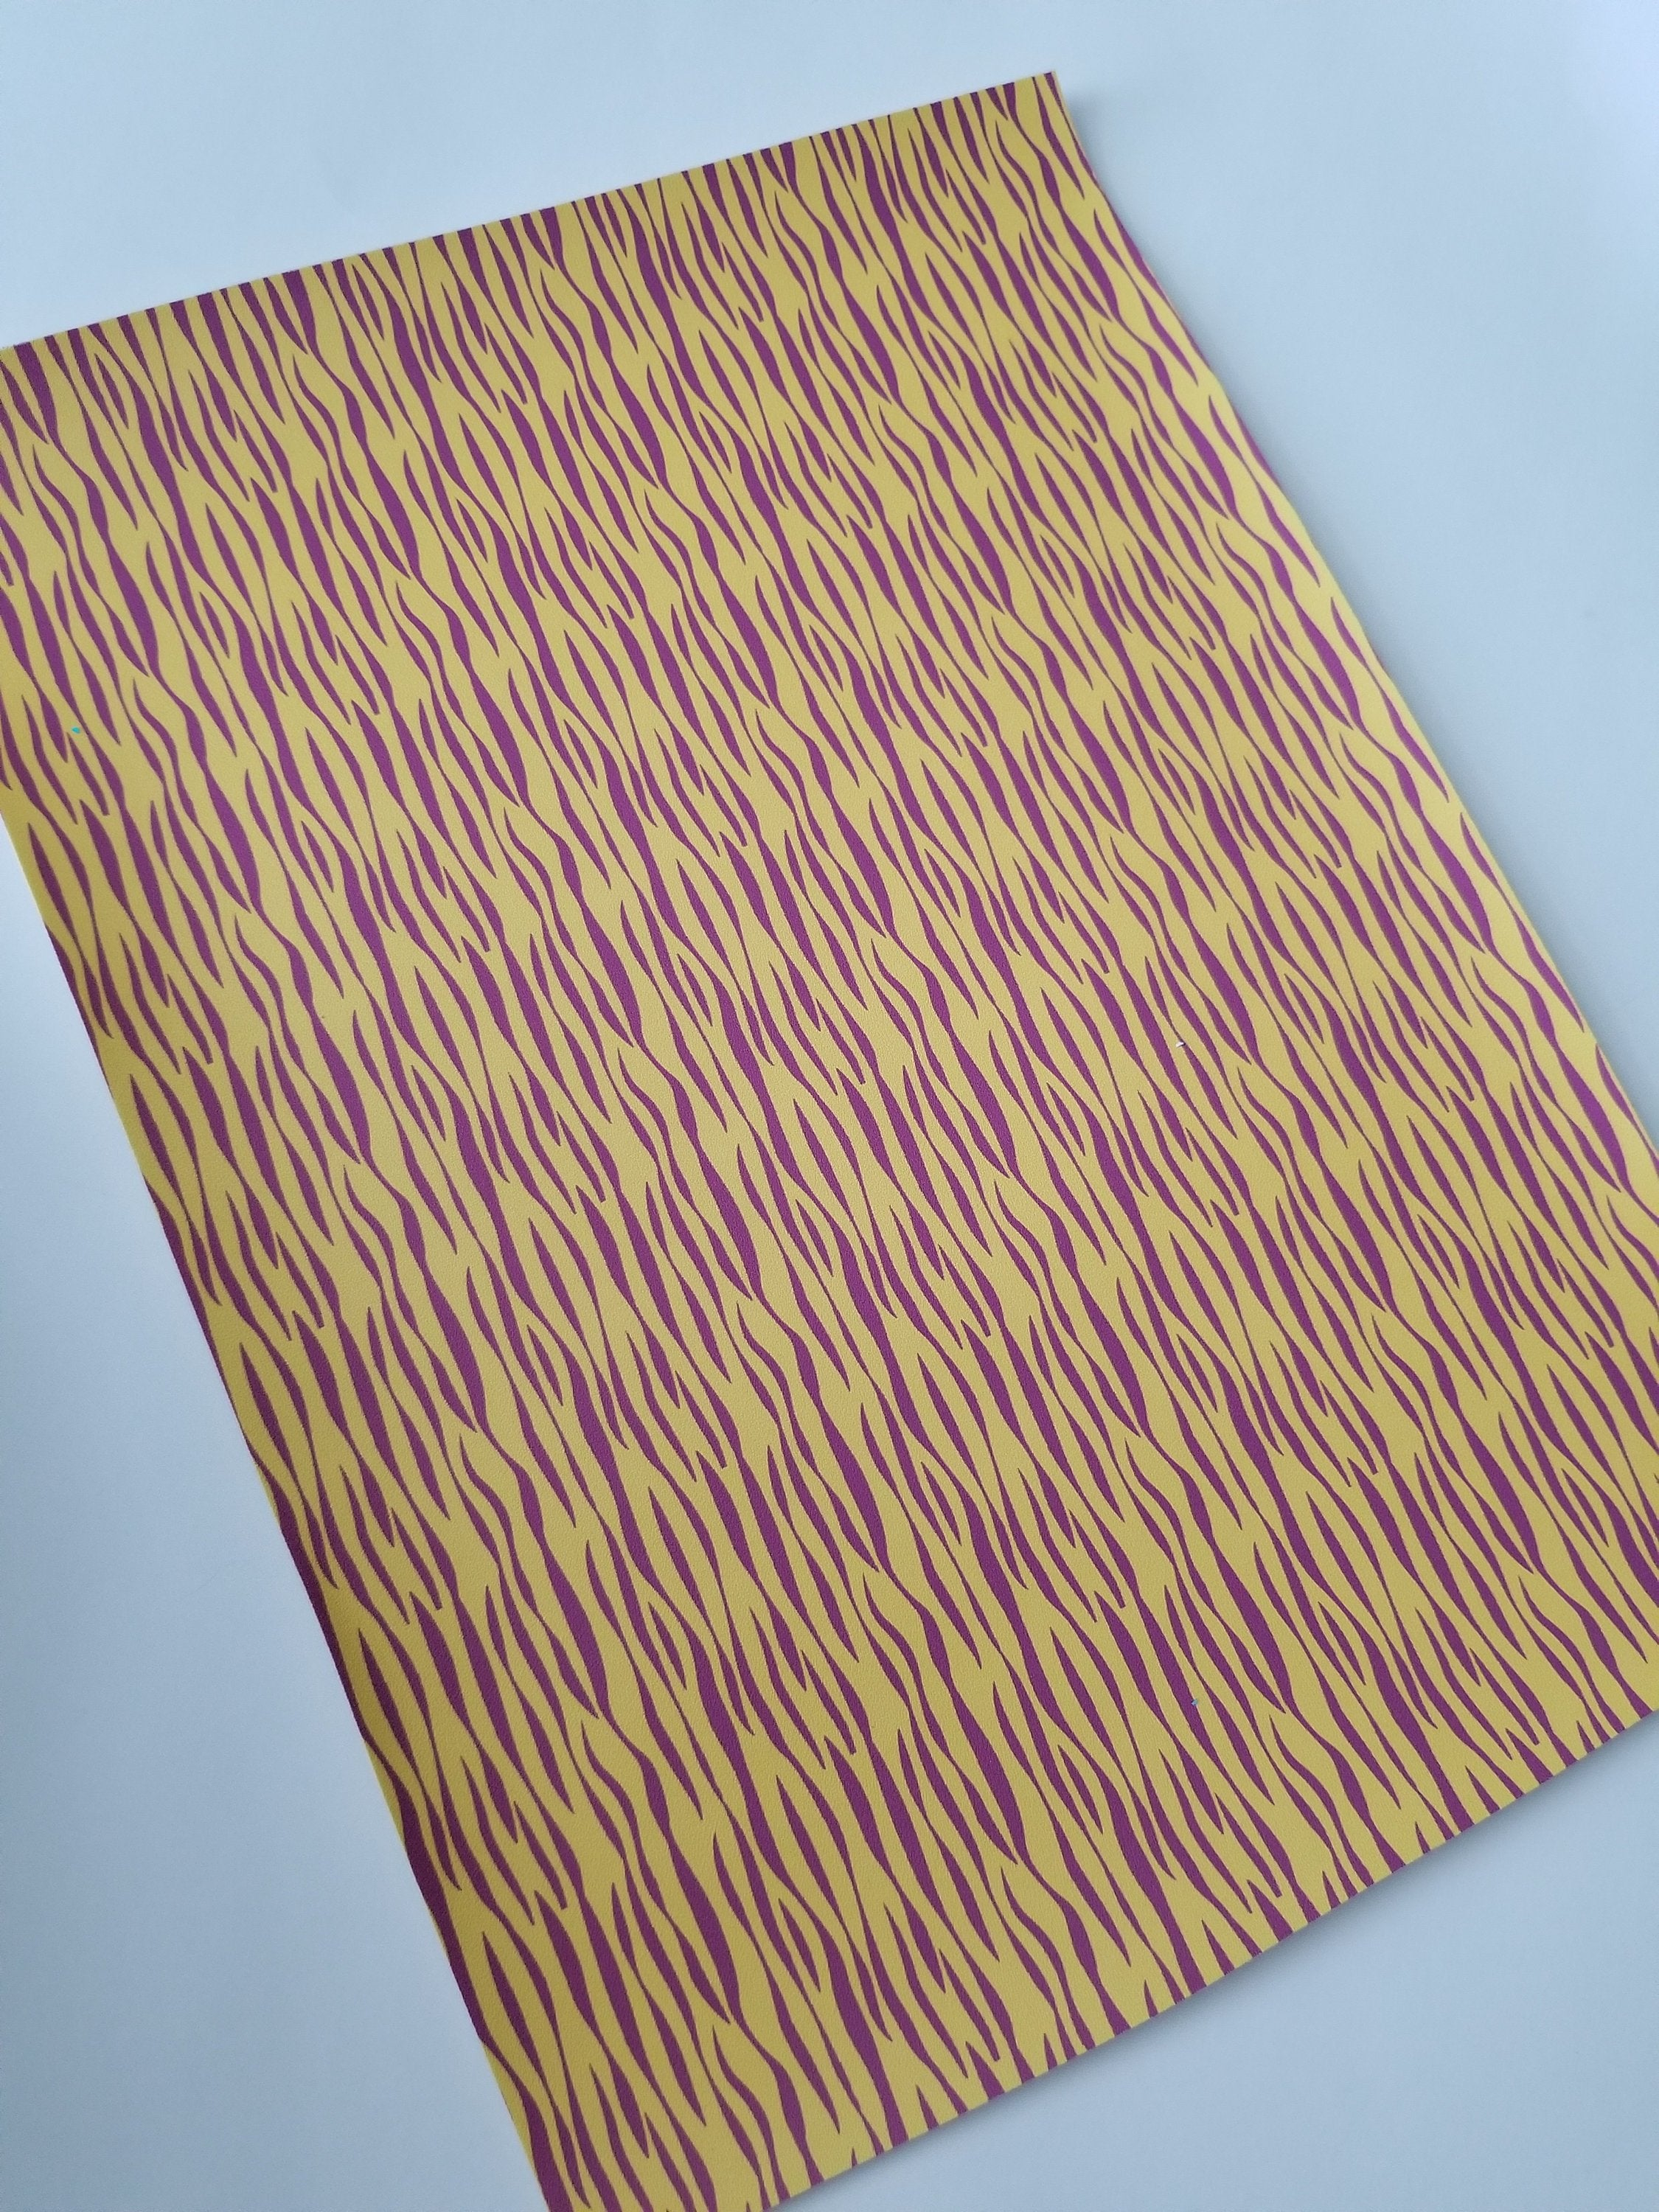 LSU TIGER STRIPES custom faux leather sheets, 8x11 faux leather, tiger  print fabric, yellow purple tiger faux leather, material for earrings